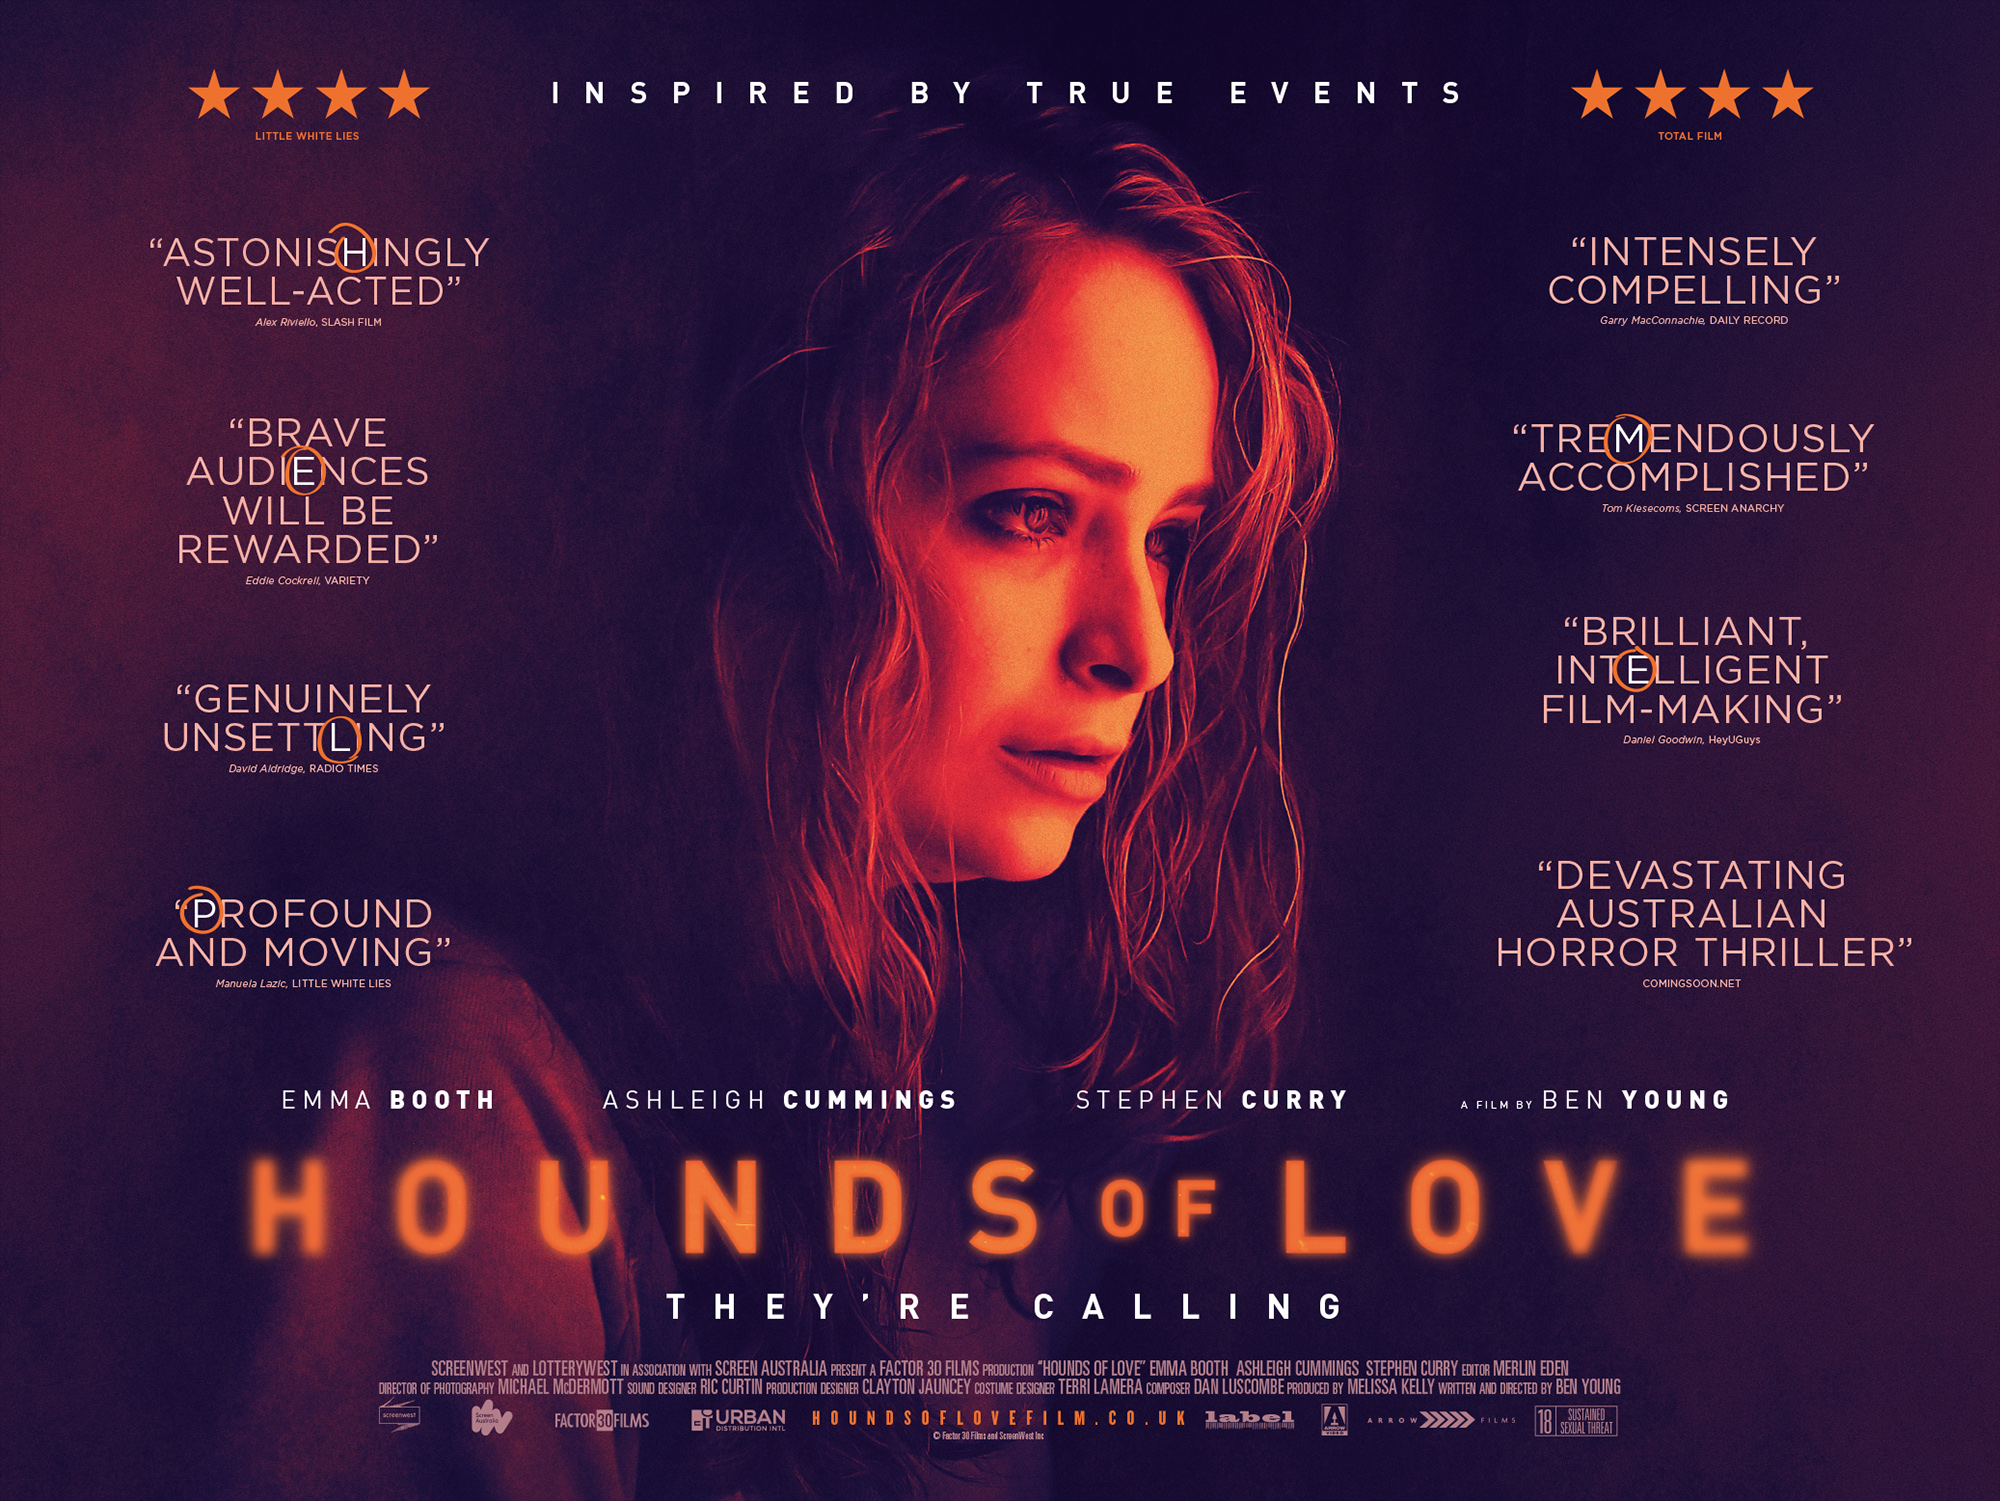 hounds of love uk movie poster   heyuguys